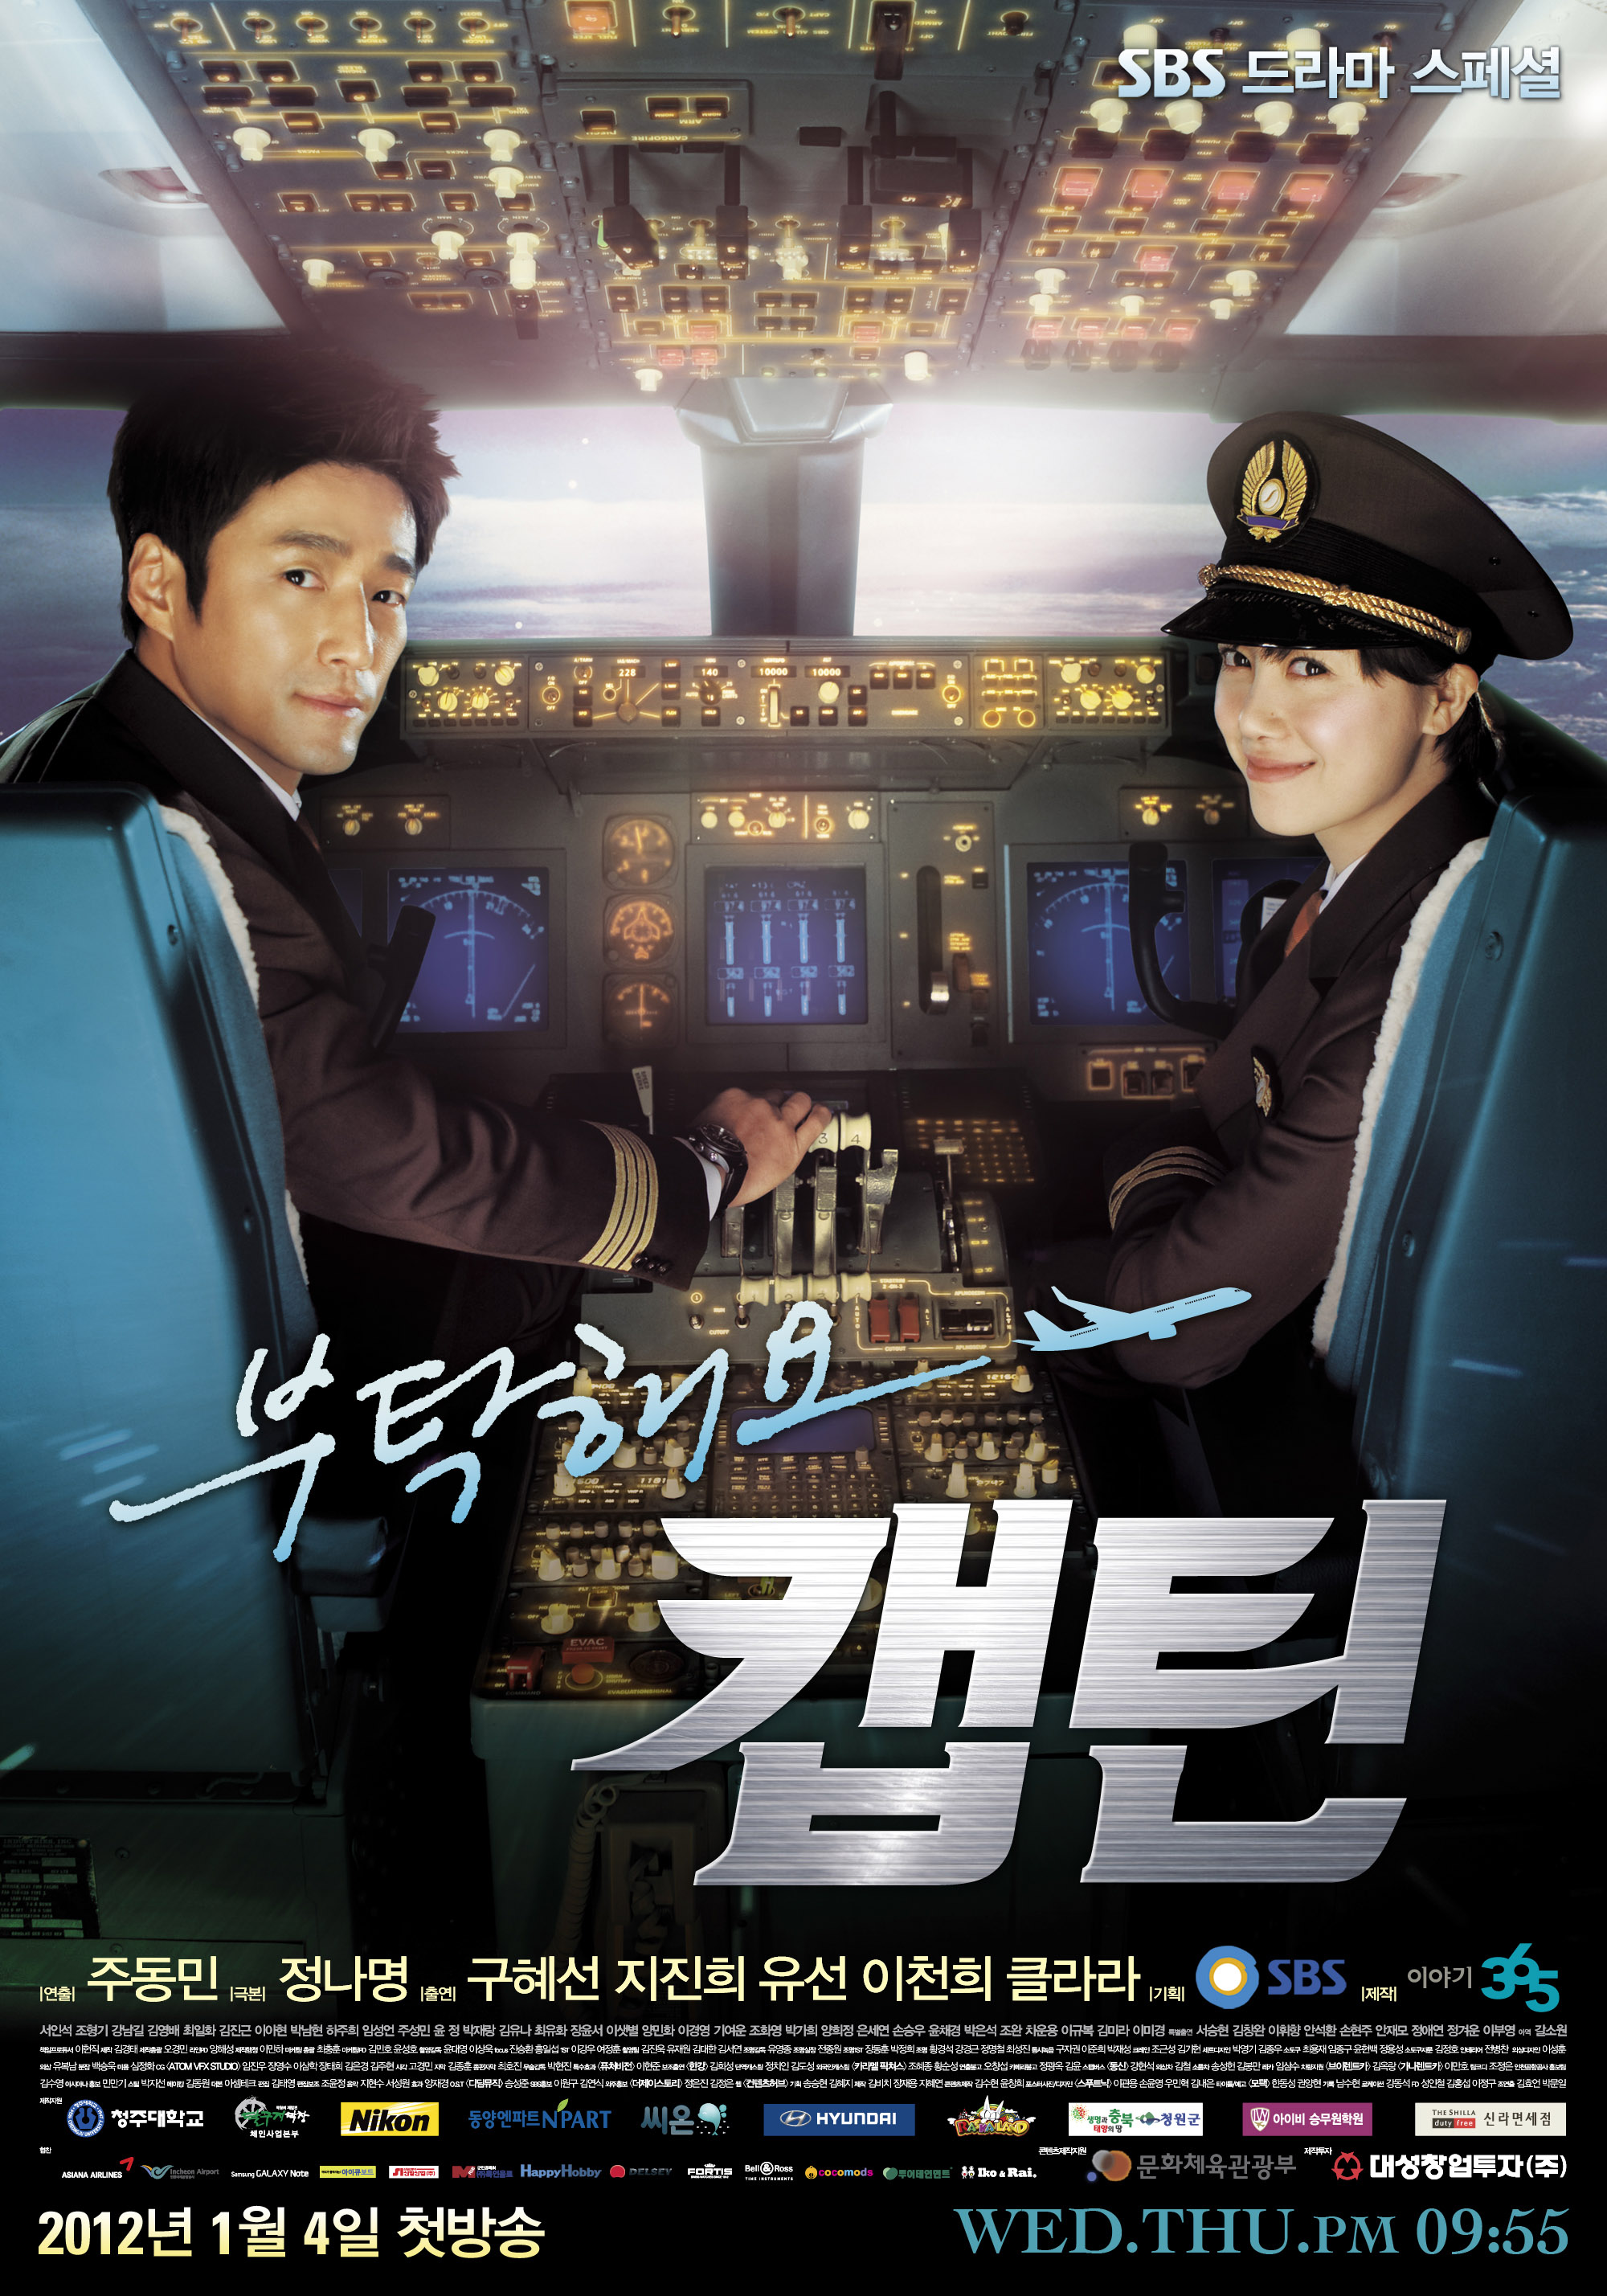 Take Care of Us Captain - Fly Again Tv series (2014)